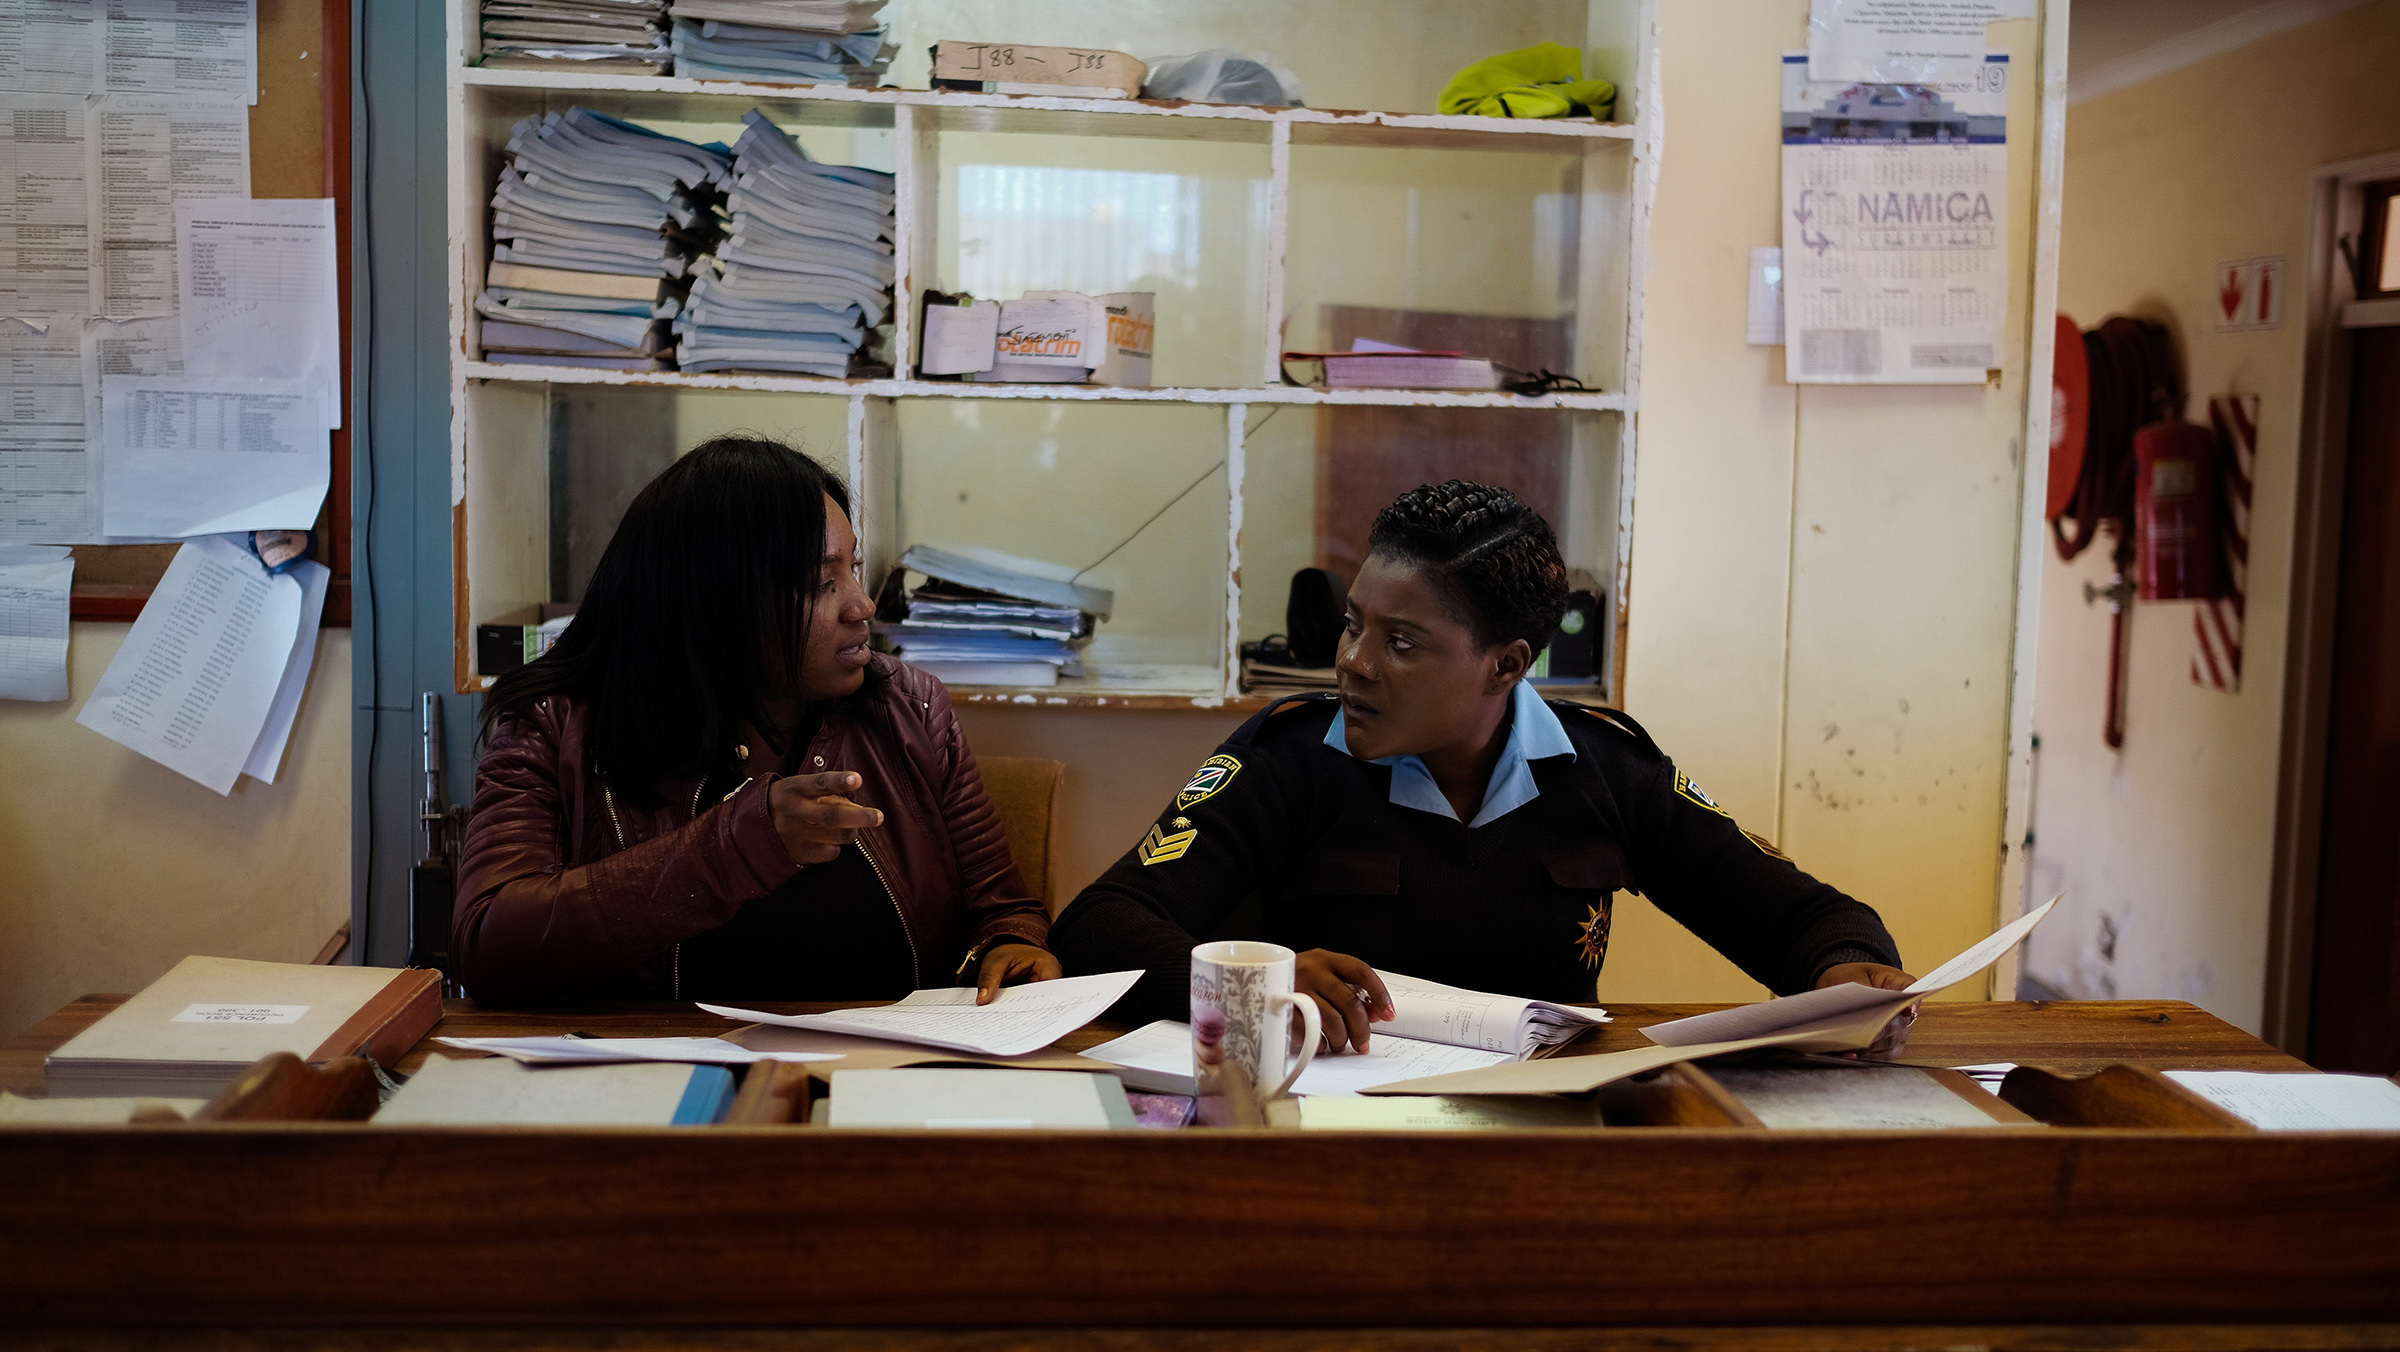 Gender-based Violence Unit Detective Gabriella and Officer Hagatora talk about a possible suspect for a rape case at the Katatura Police Station in Windhoek, Namibia in the summer of 2019.